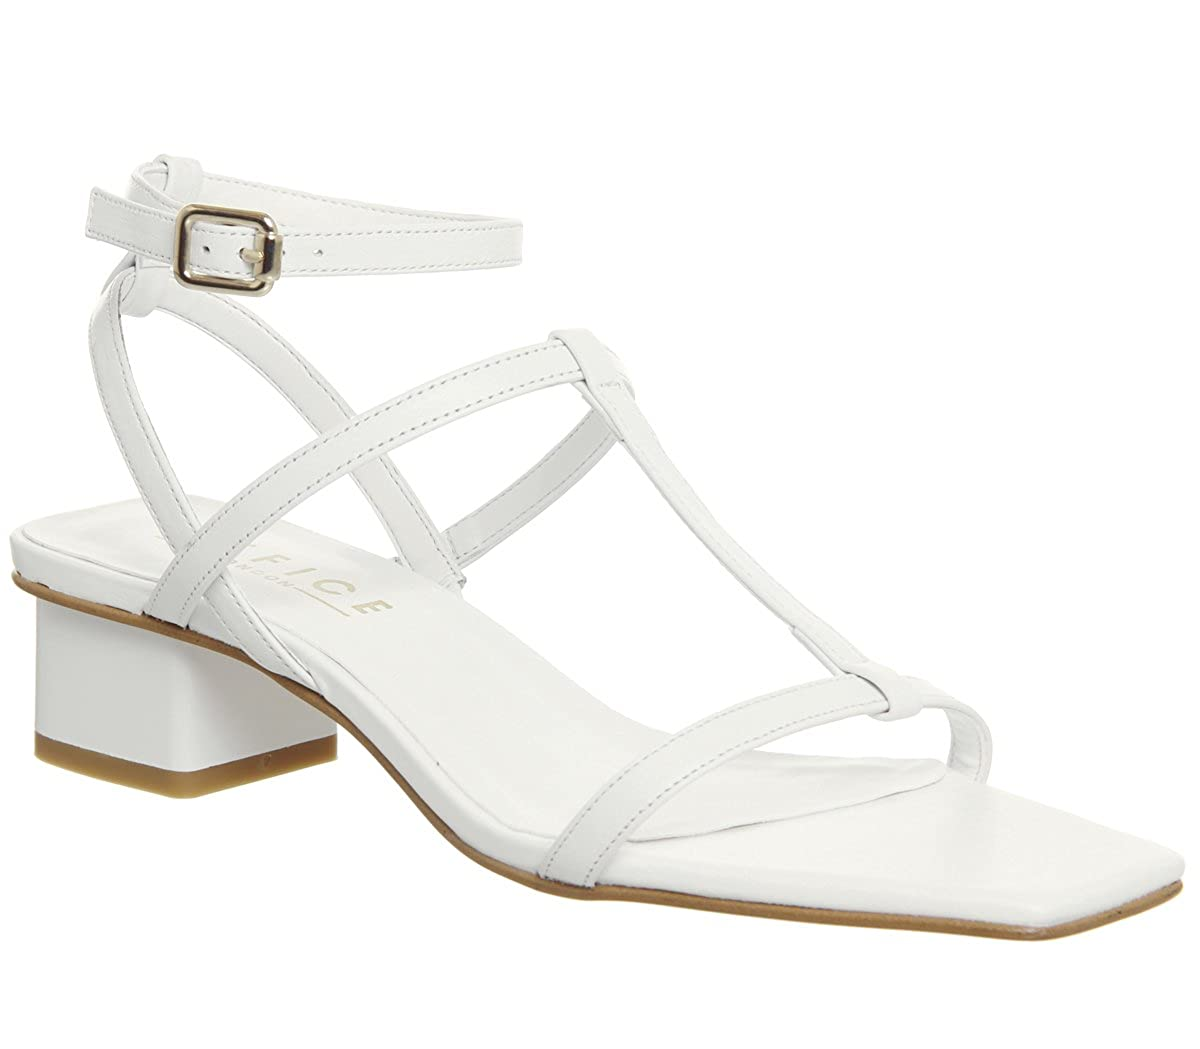 c98a104ab3c Office Miley Square Toe Strappy Sandals  Amazon.co.uk  Shoes   Bags